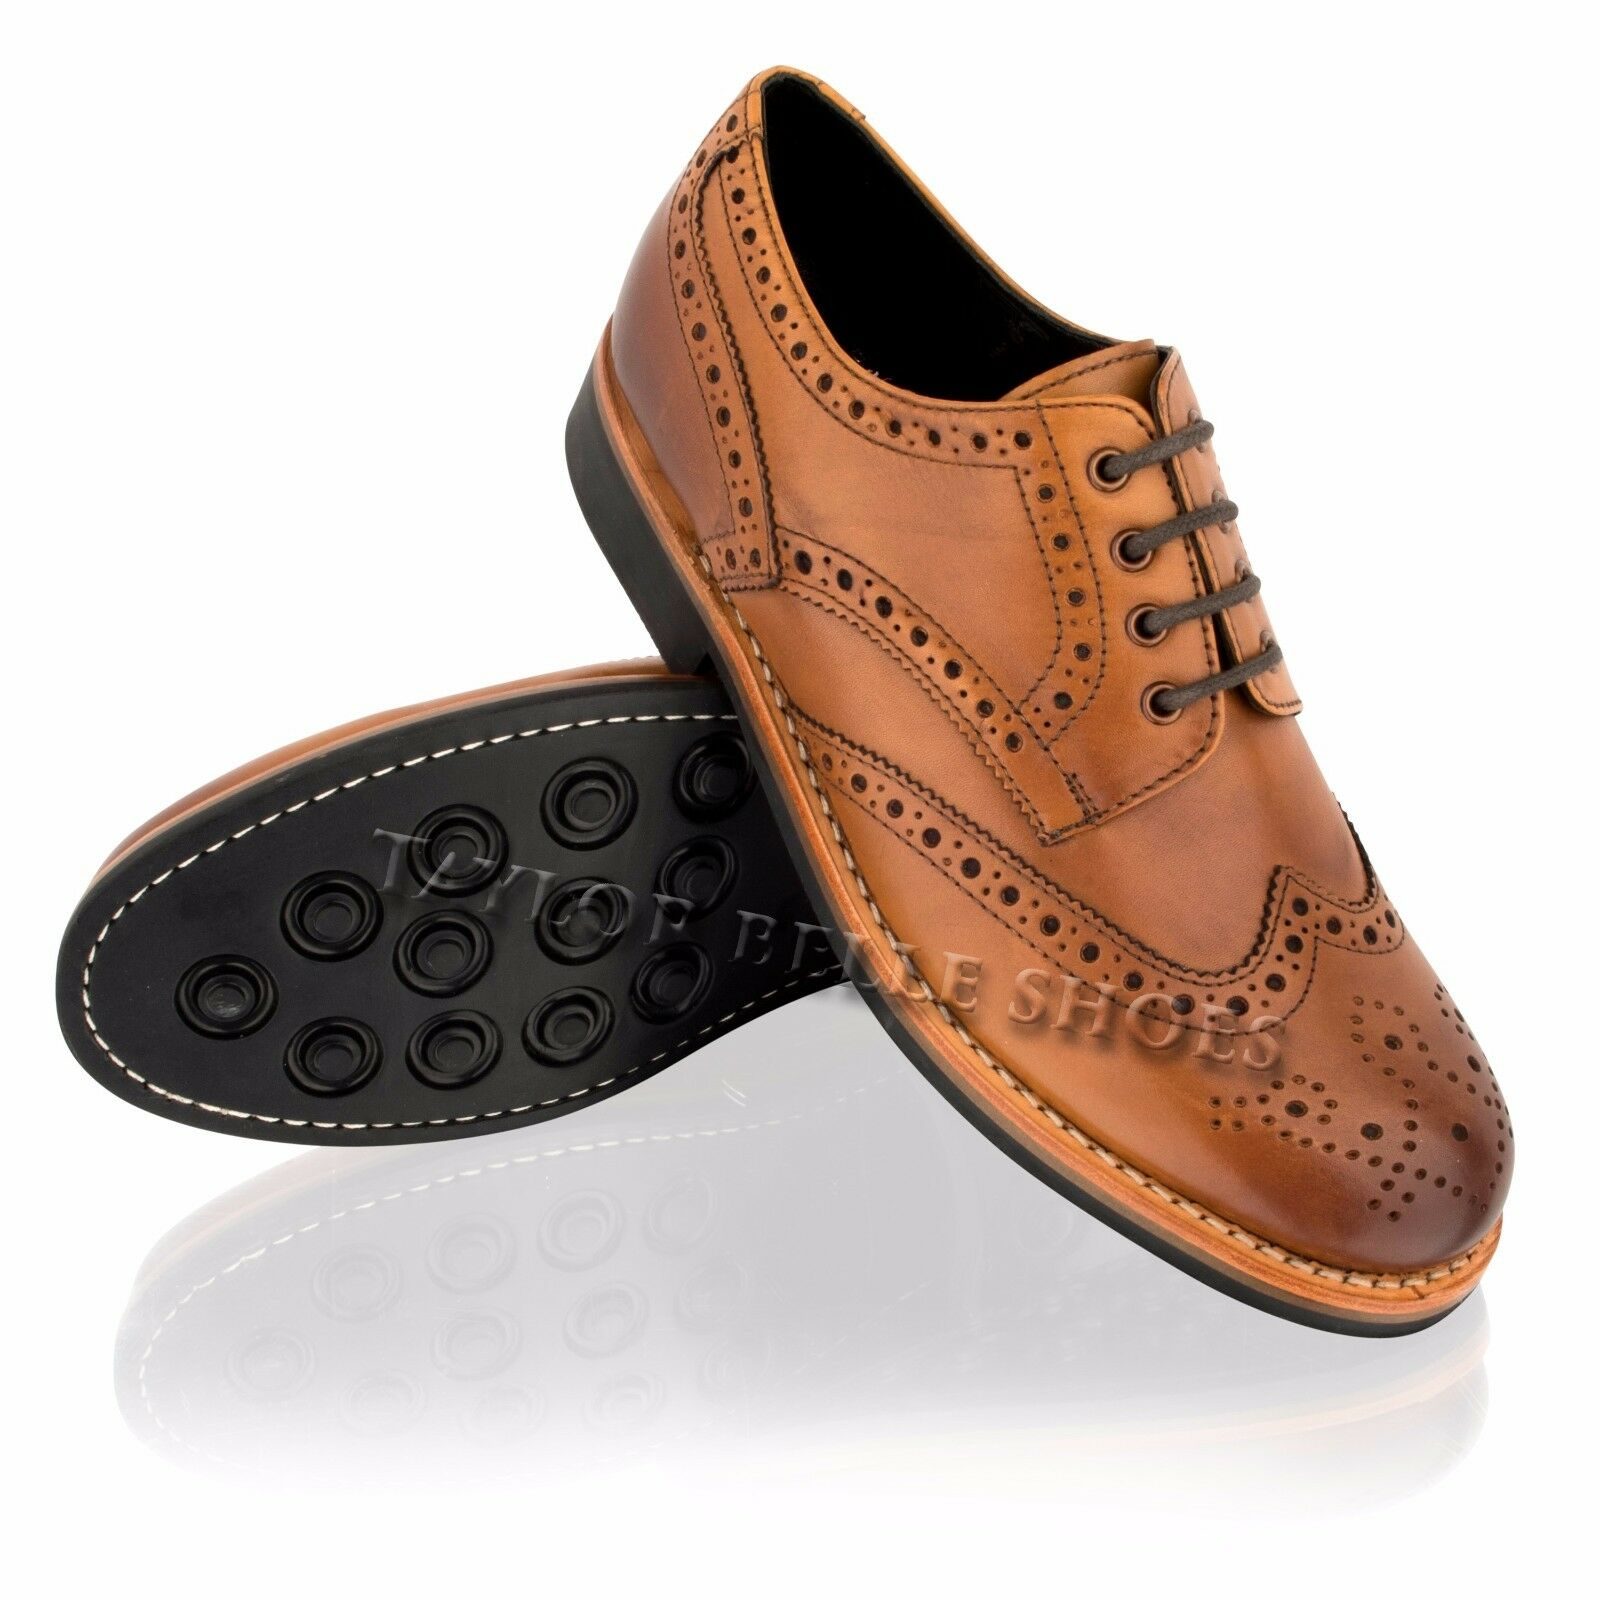 Mens Leather Brogue Lace up Goodyear Welted Sole Formal Dress Wedding Shoes Size